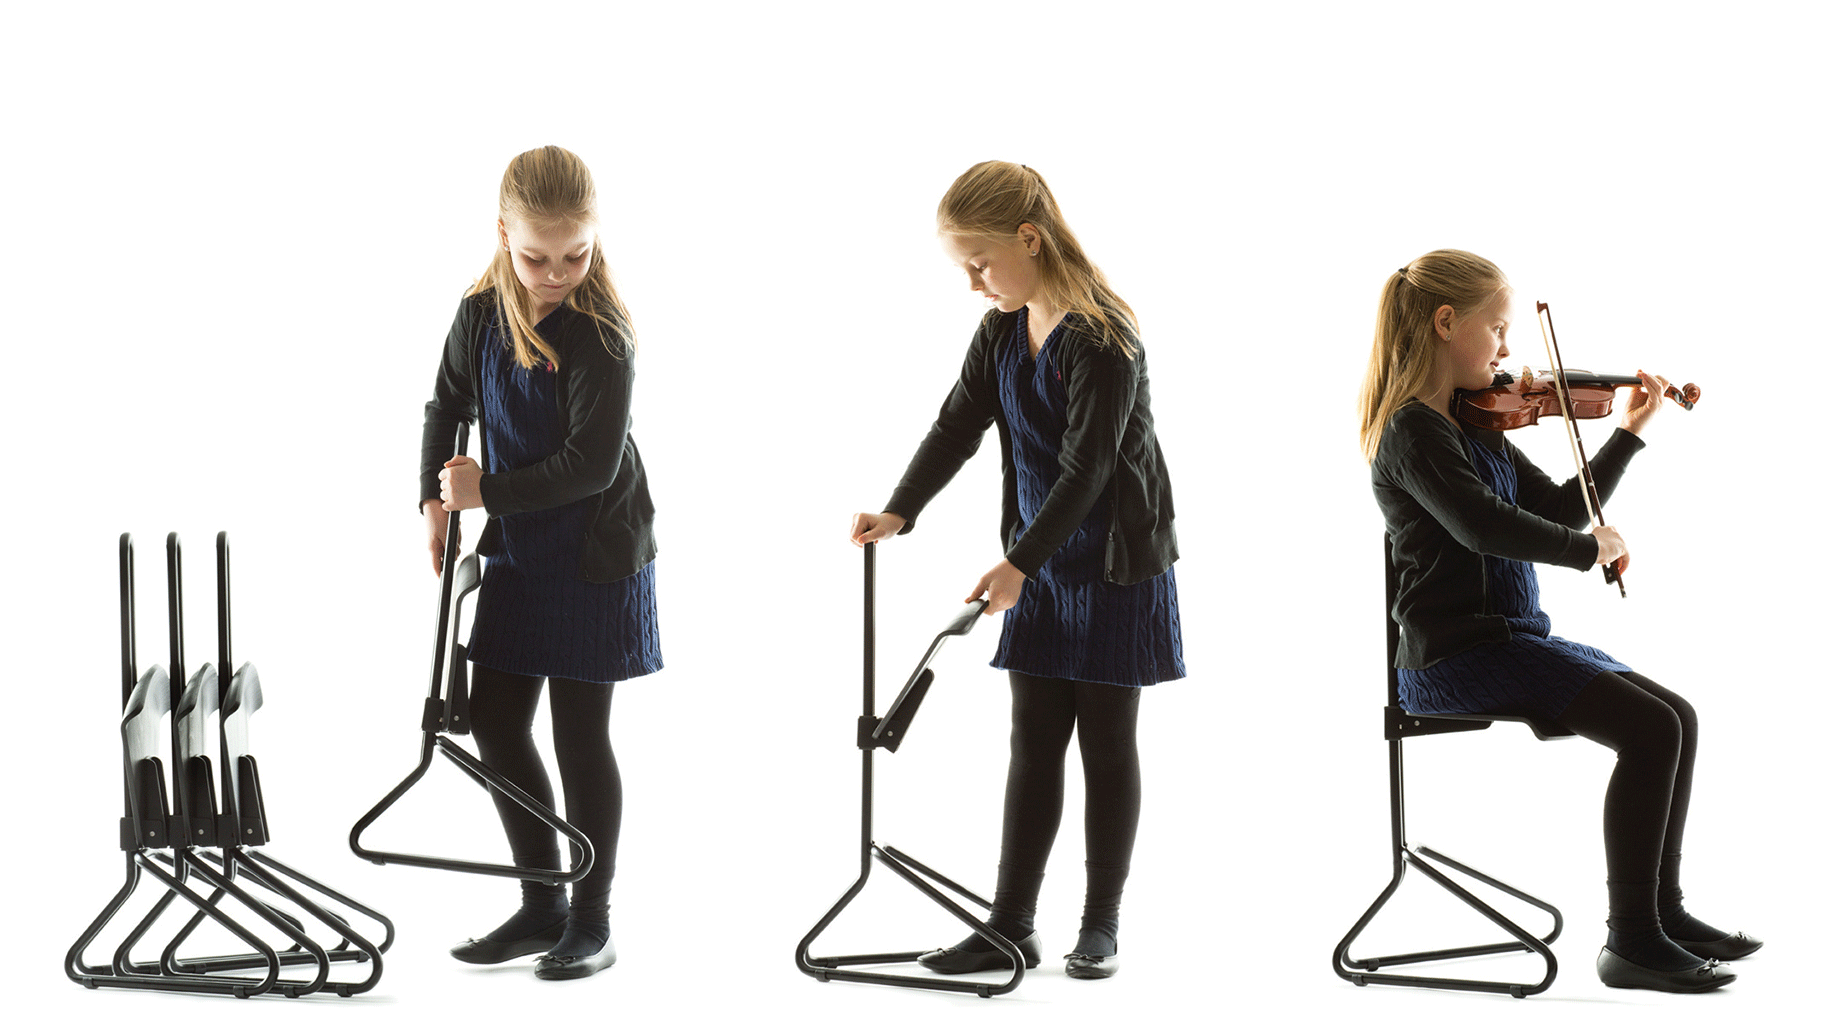 oktaviachair the music chair that grows with the child